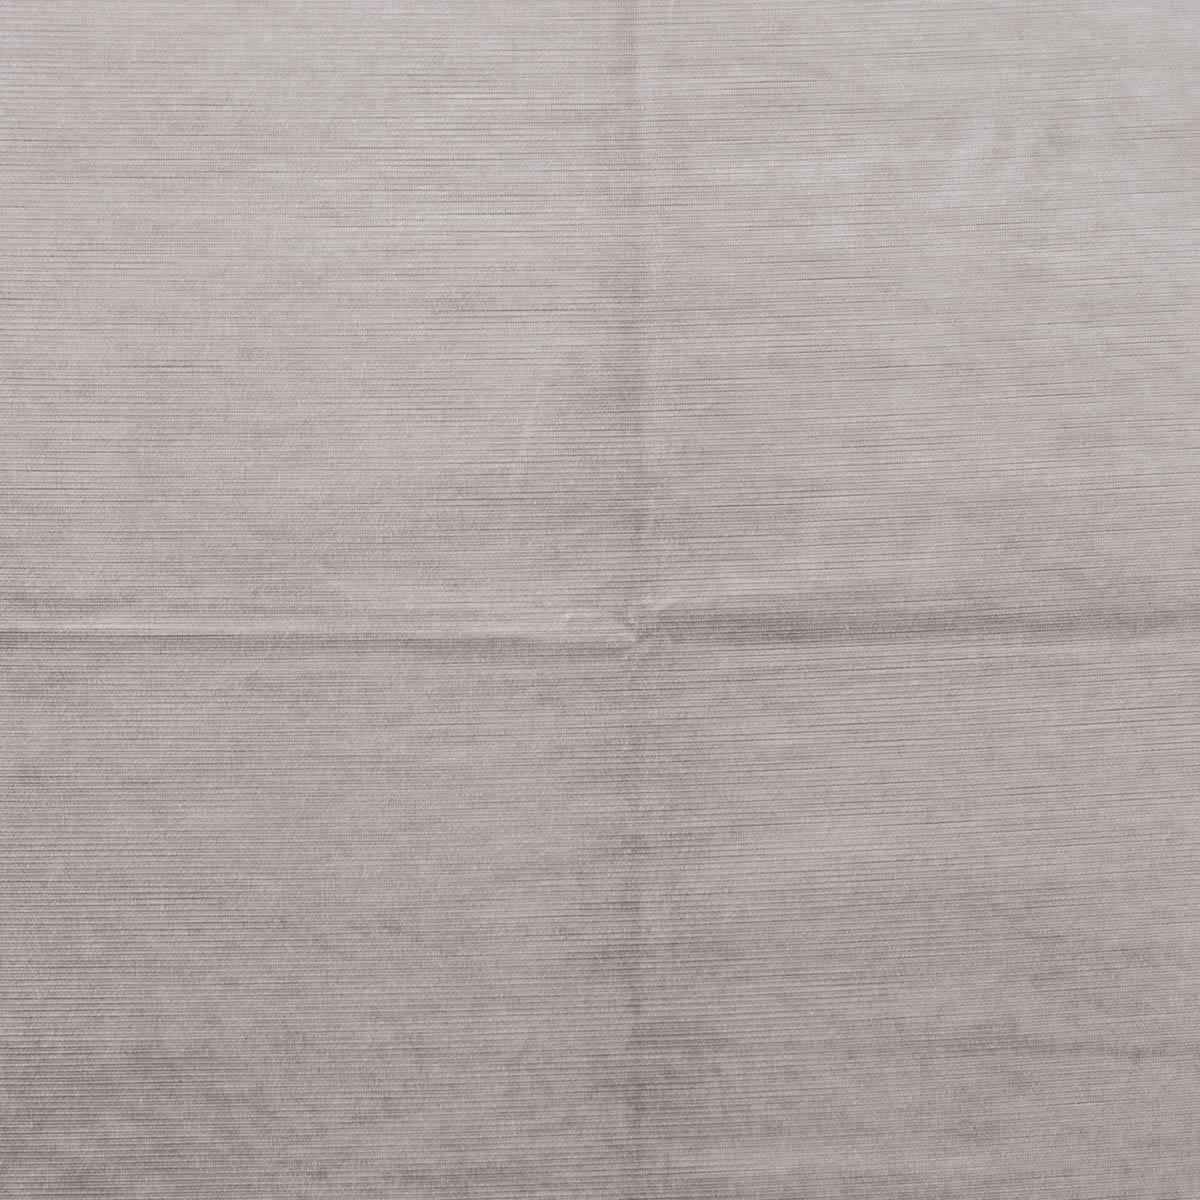 SMD Fabrics Luxe Curtain Fabric Mercury Picture